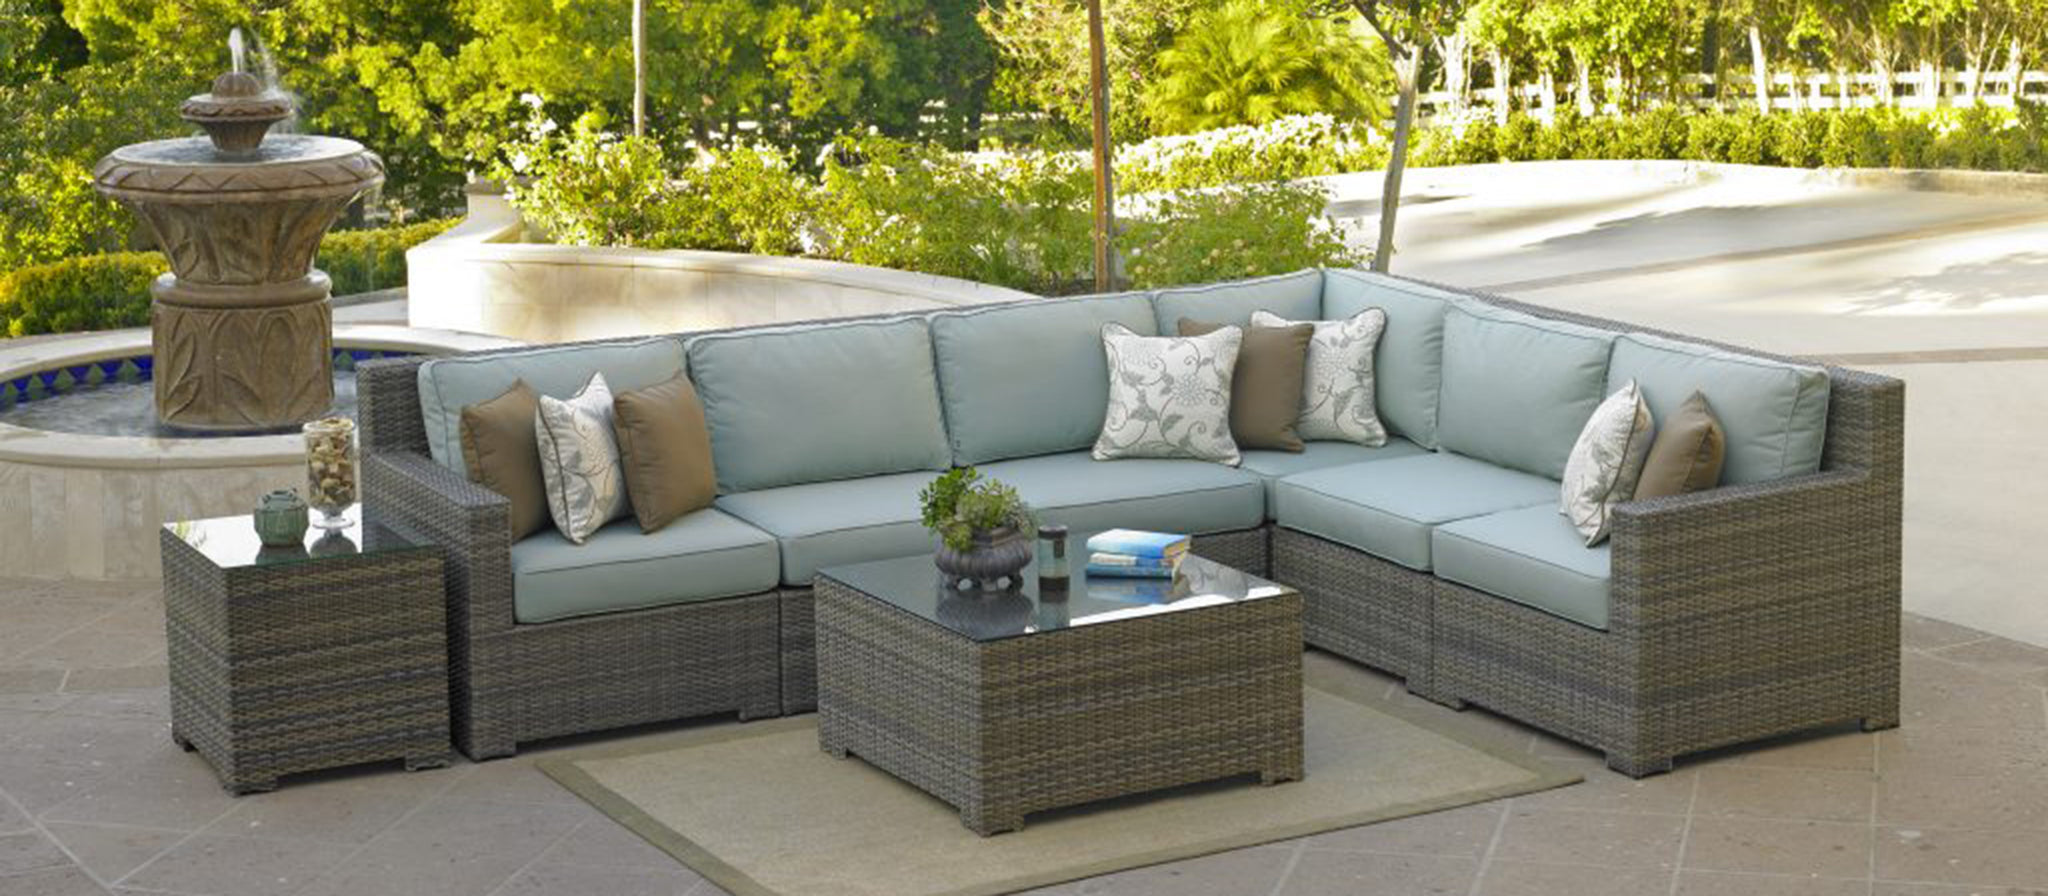 All weather wicker furniture collection